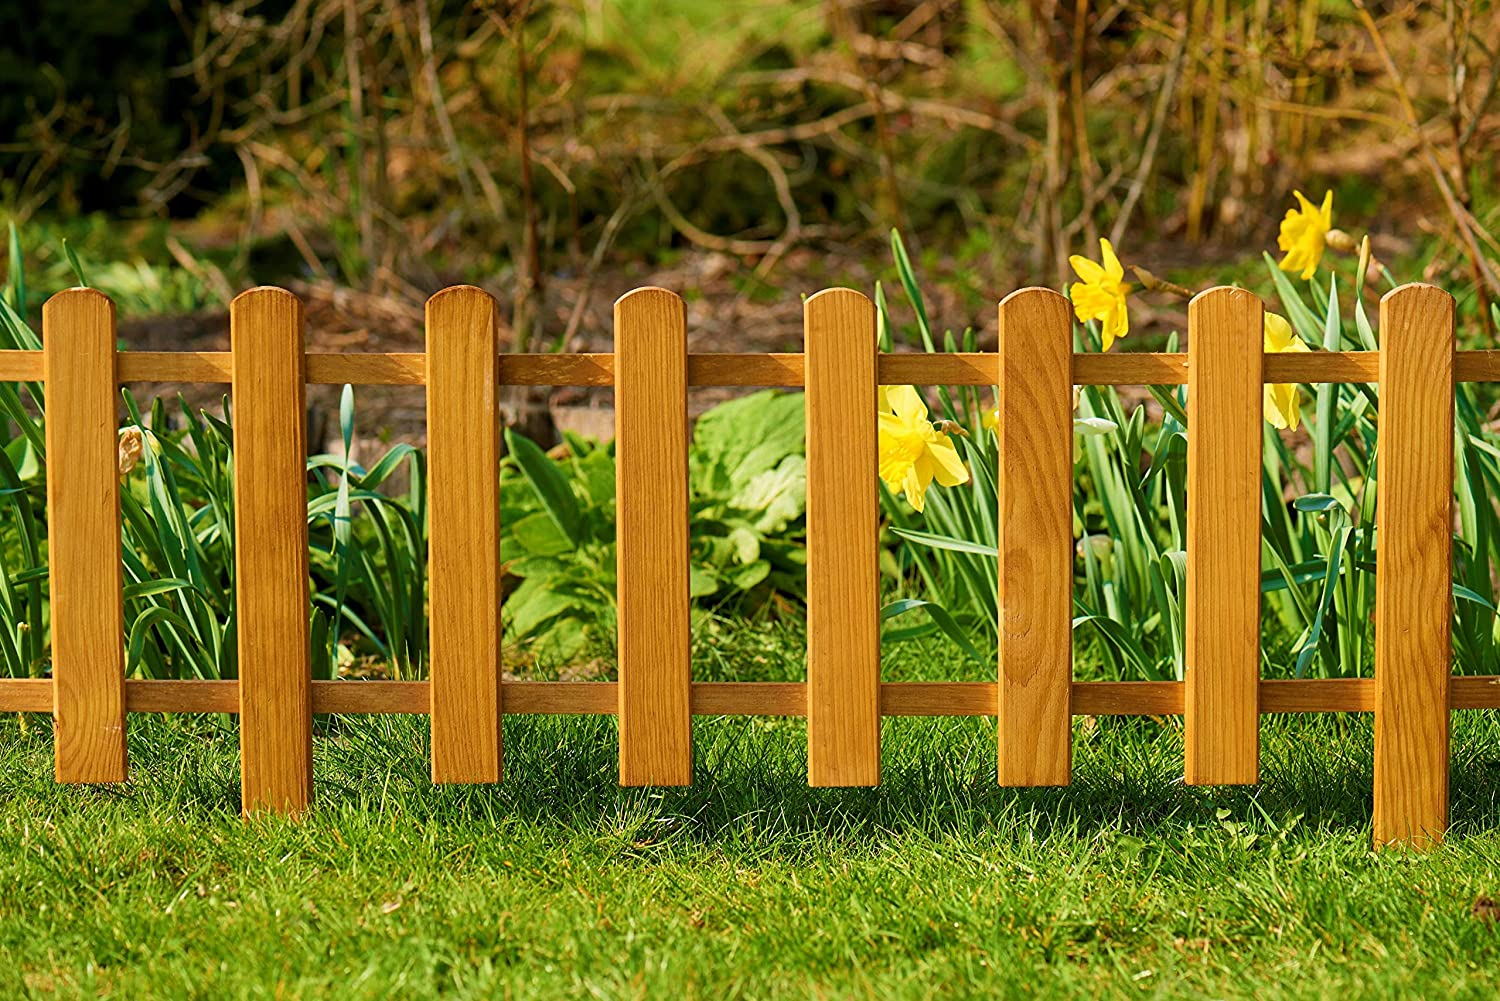 made from wood as a garden fence Set:Pack of 2 in 2 colors weather-resistant treatment 2x105 cm Floranica/® Picket Border Fence Color:natural height 30 cm